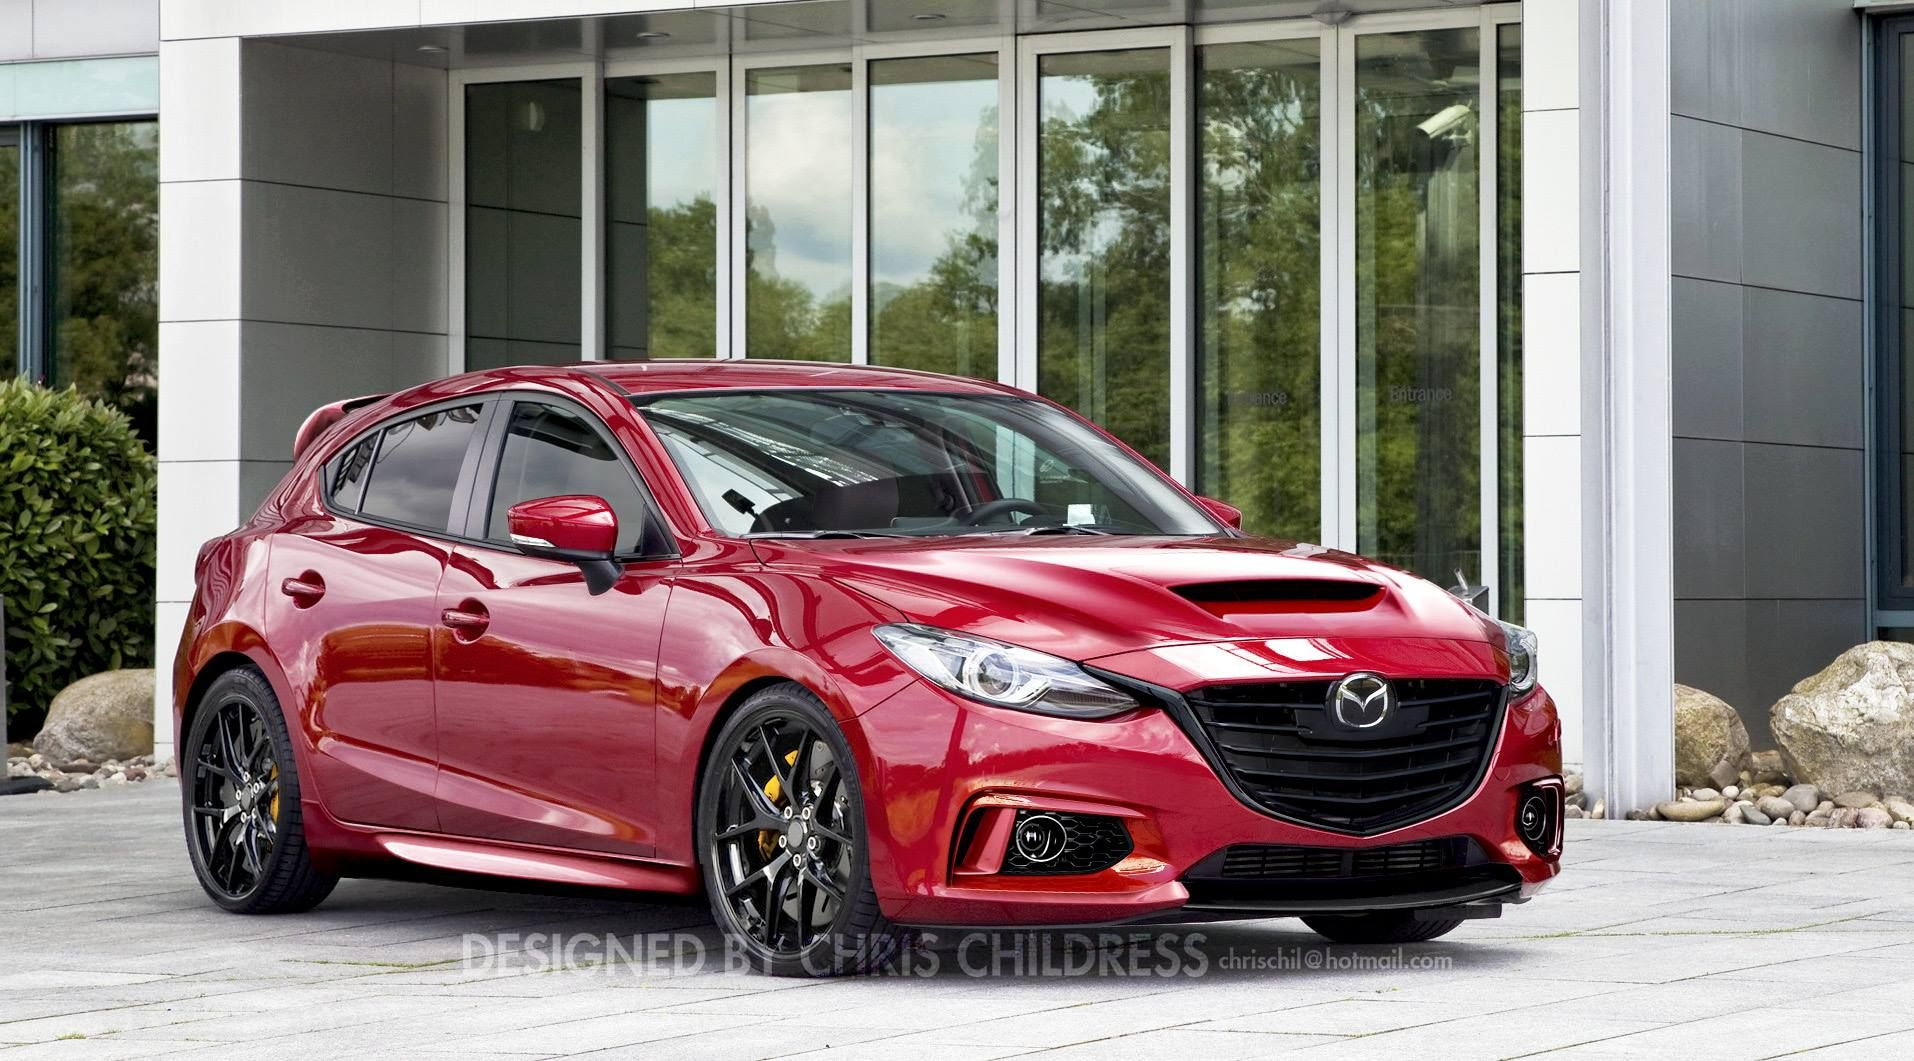 Custom MazdaSpeed 3